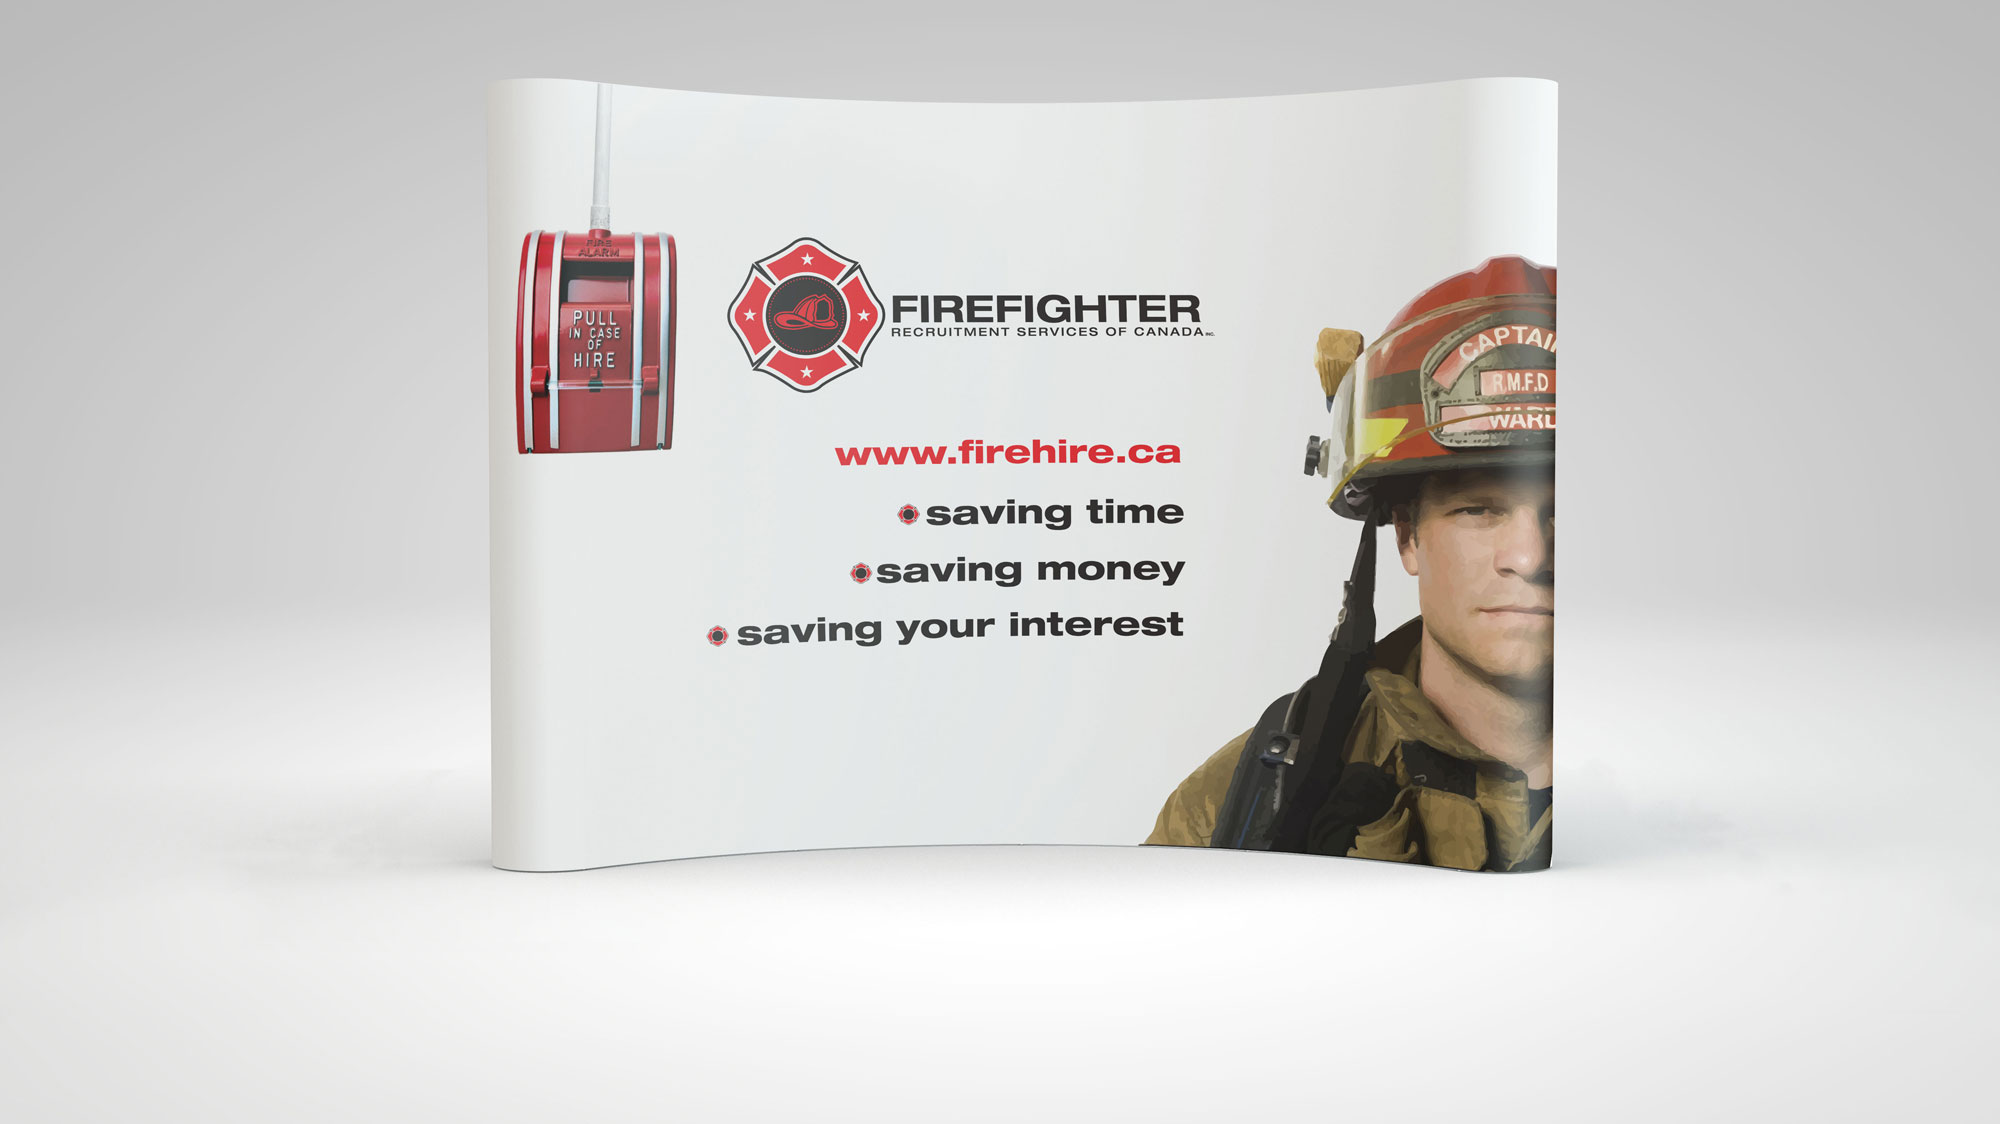 Firefighter – Tradeshow Display